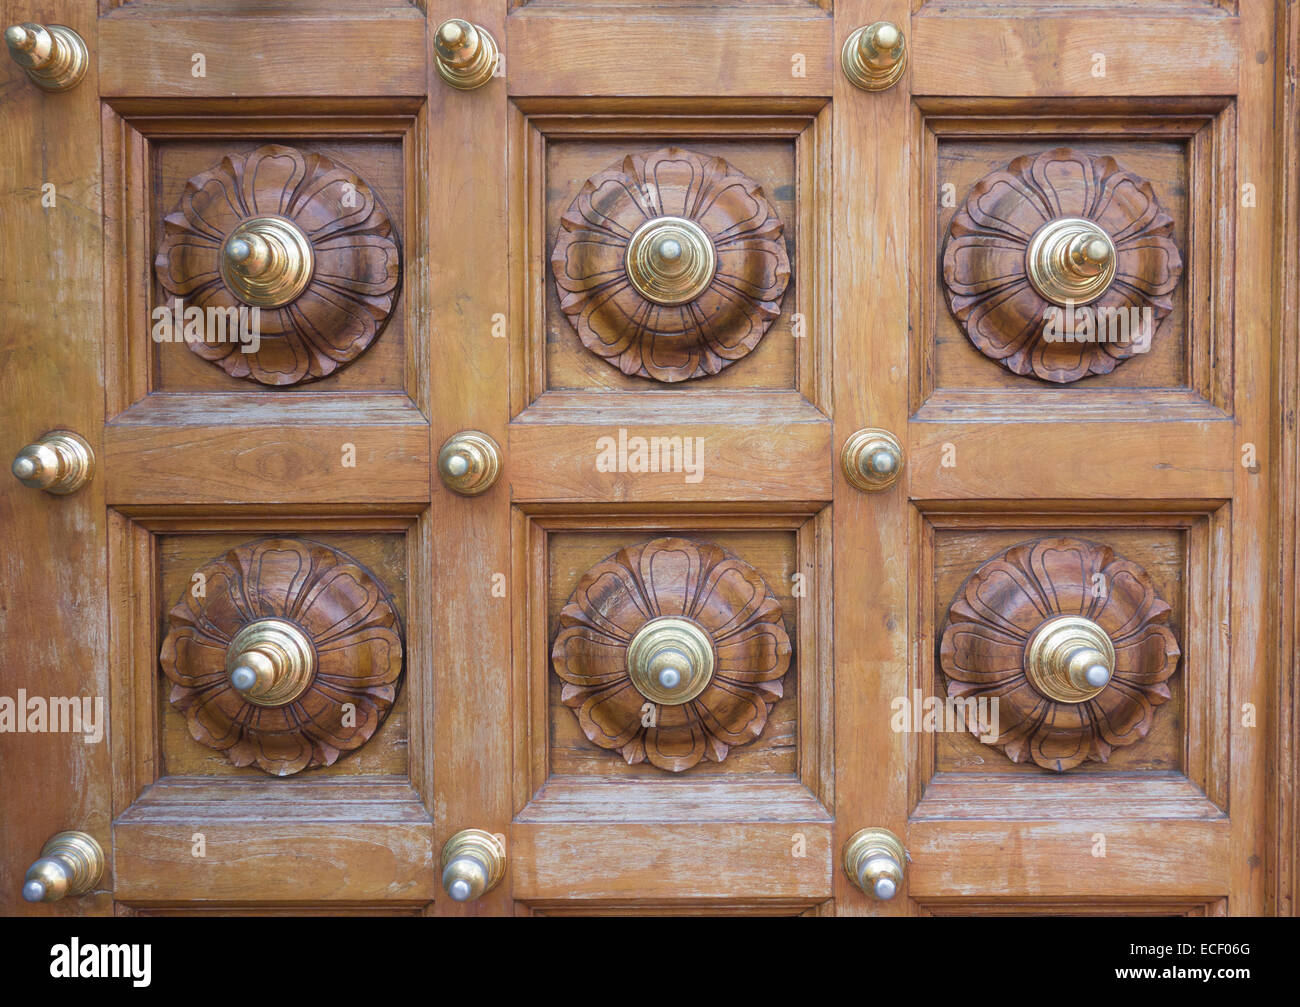 Ornate Carved Wood And Brass Design On A Temple Door